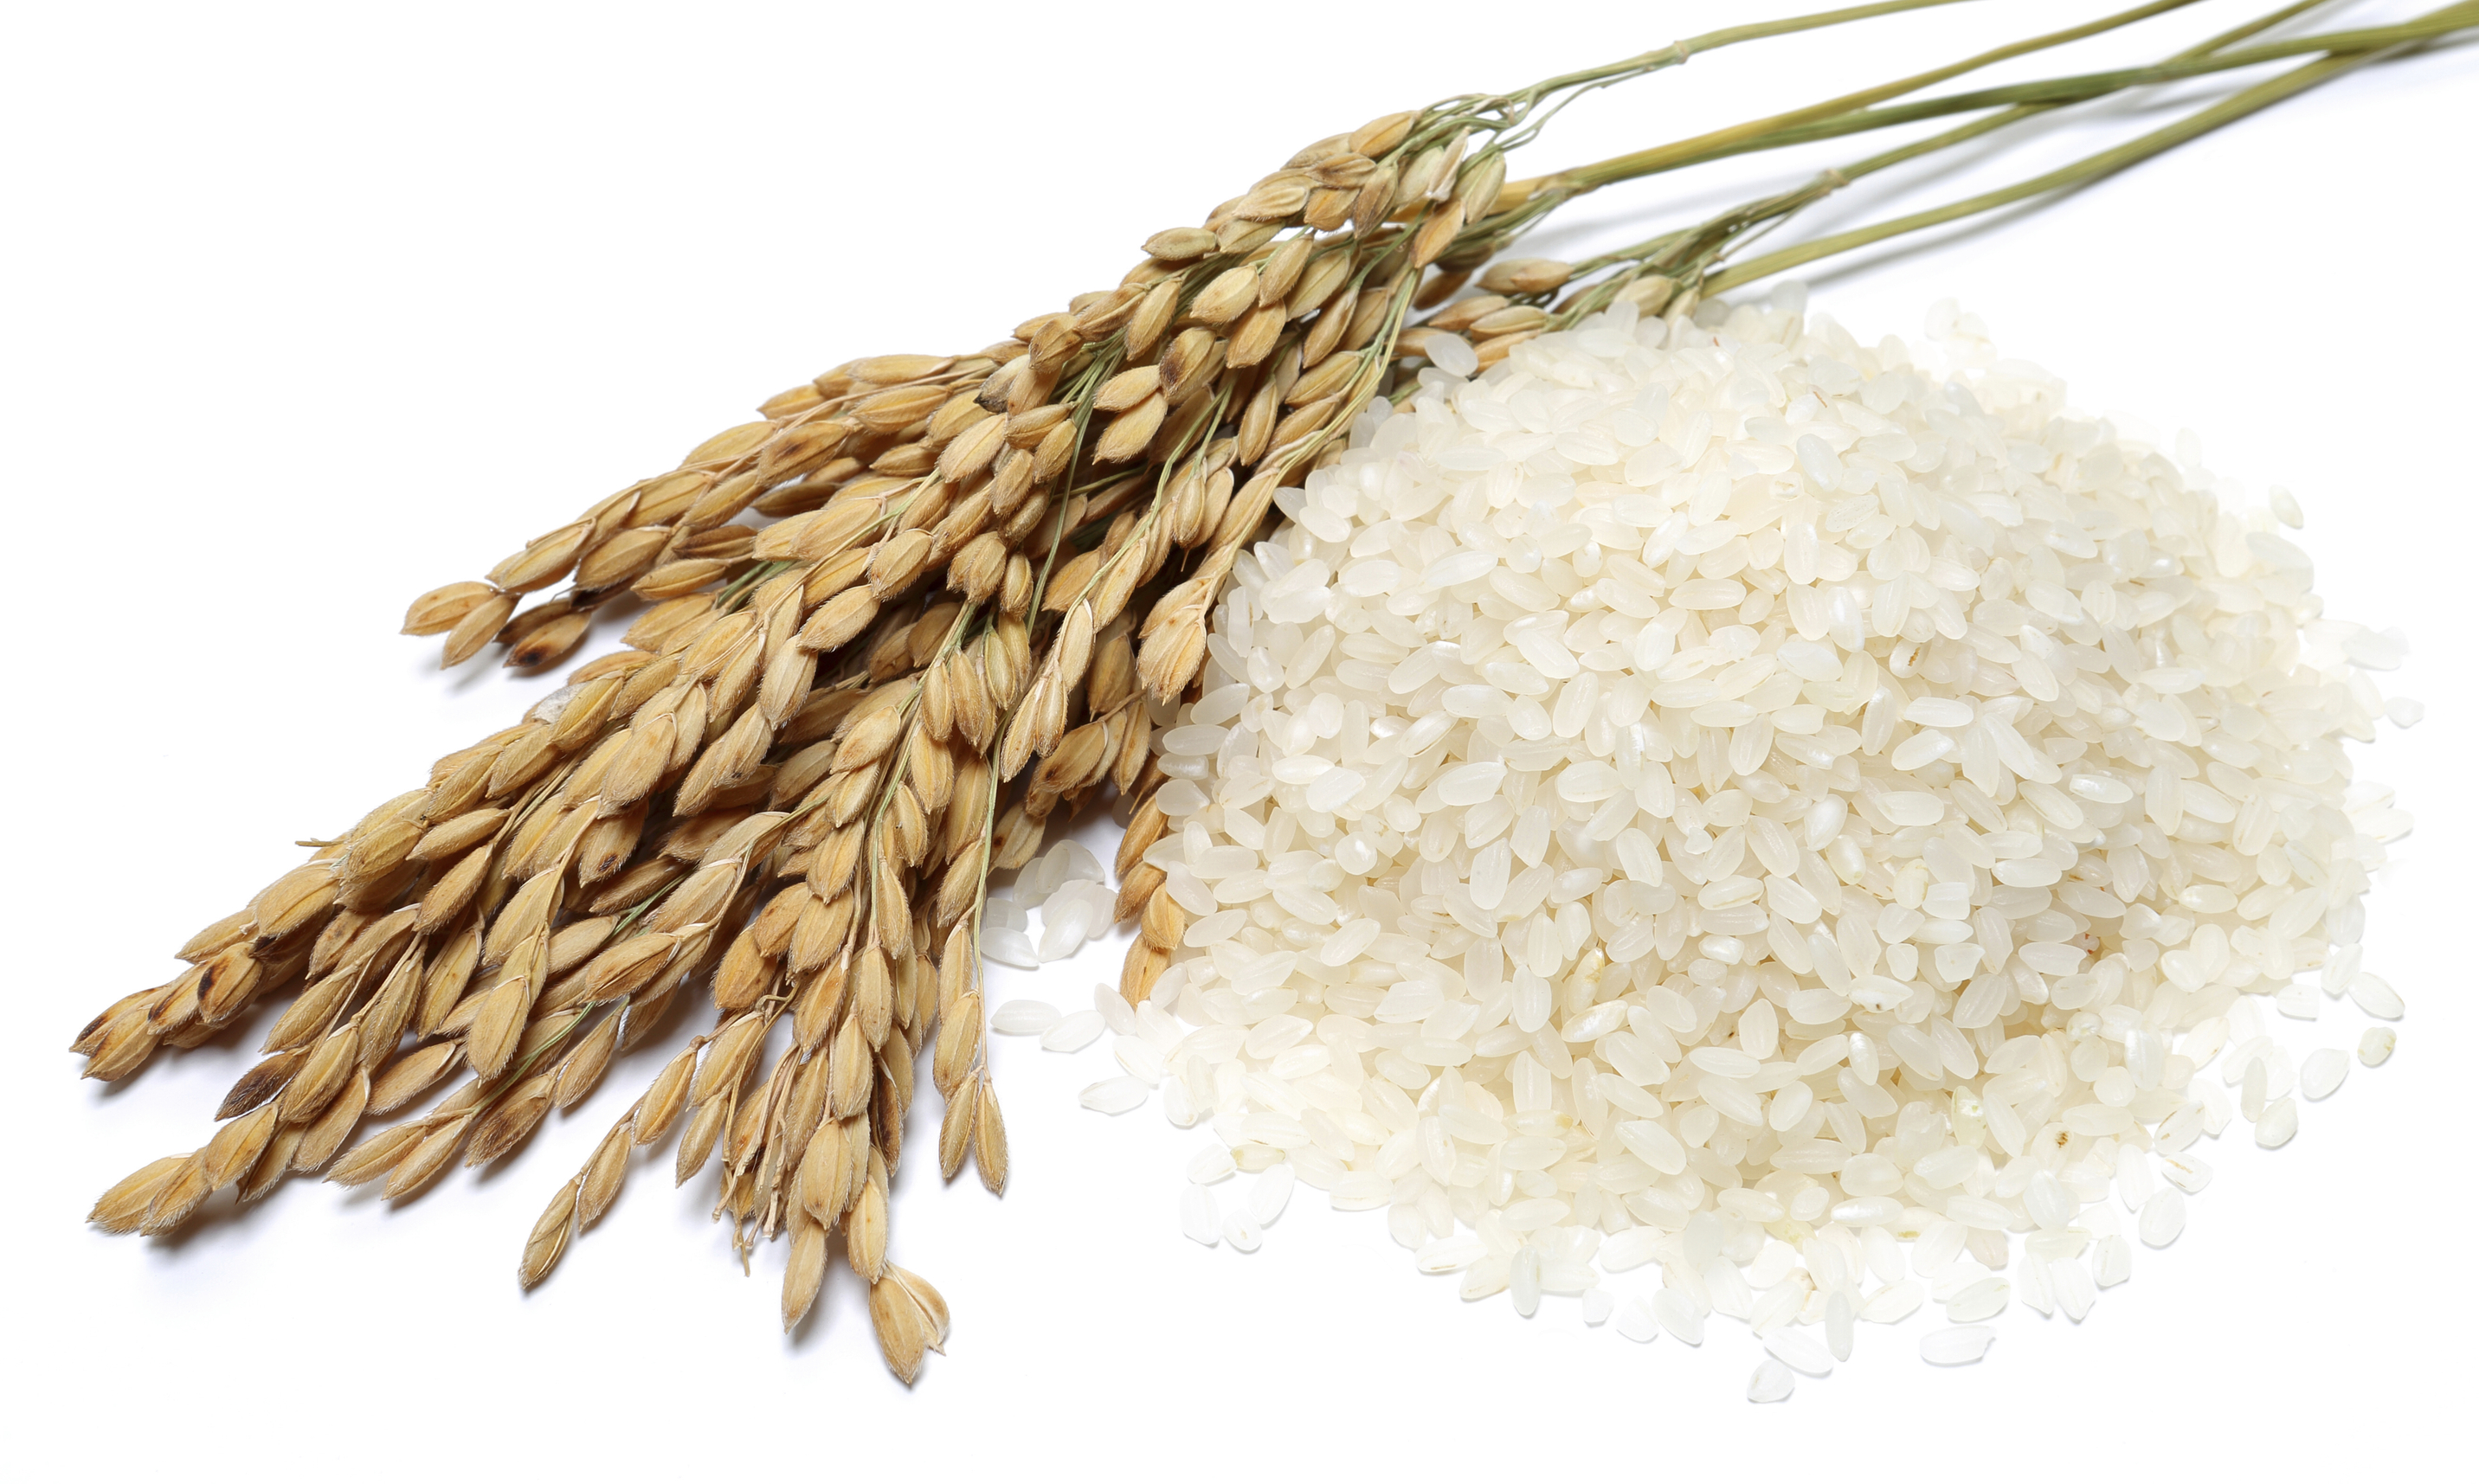 rice, rice straw and paddy on a white background